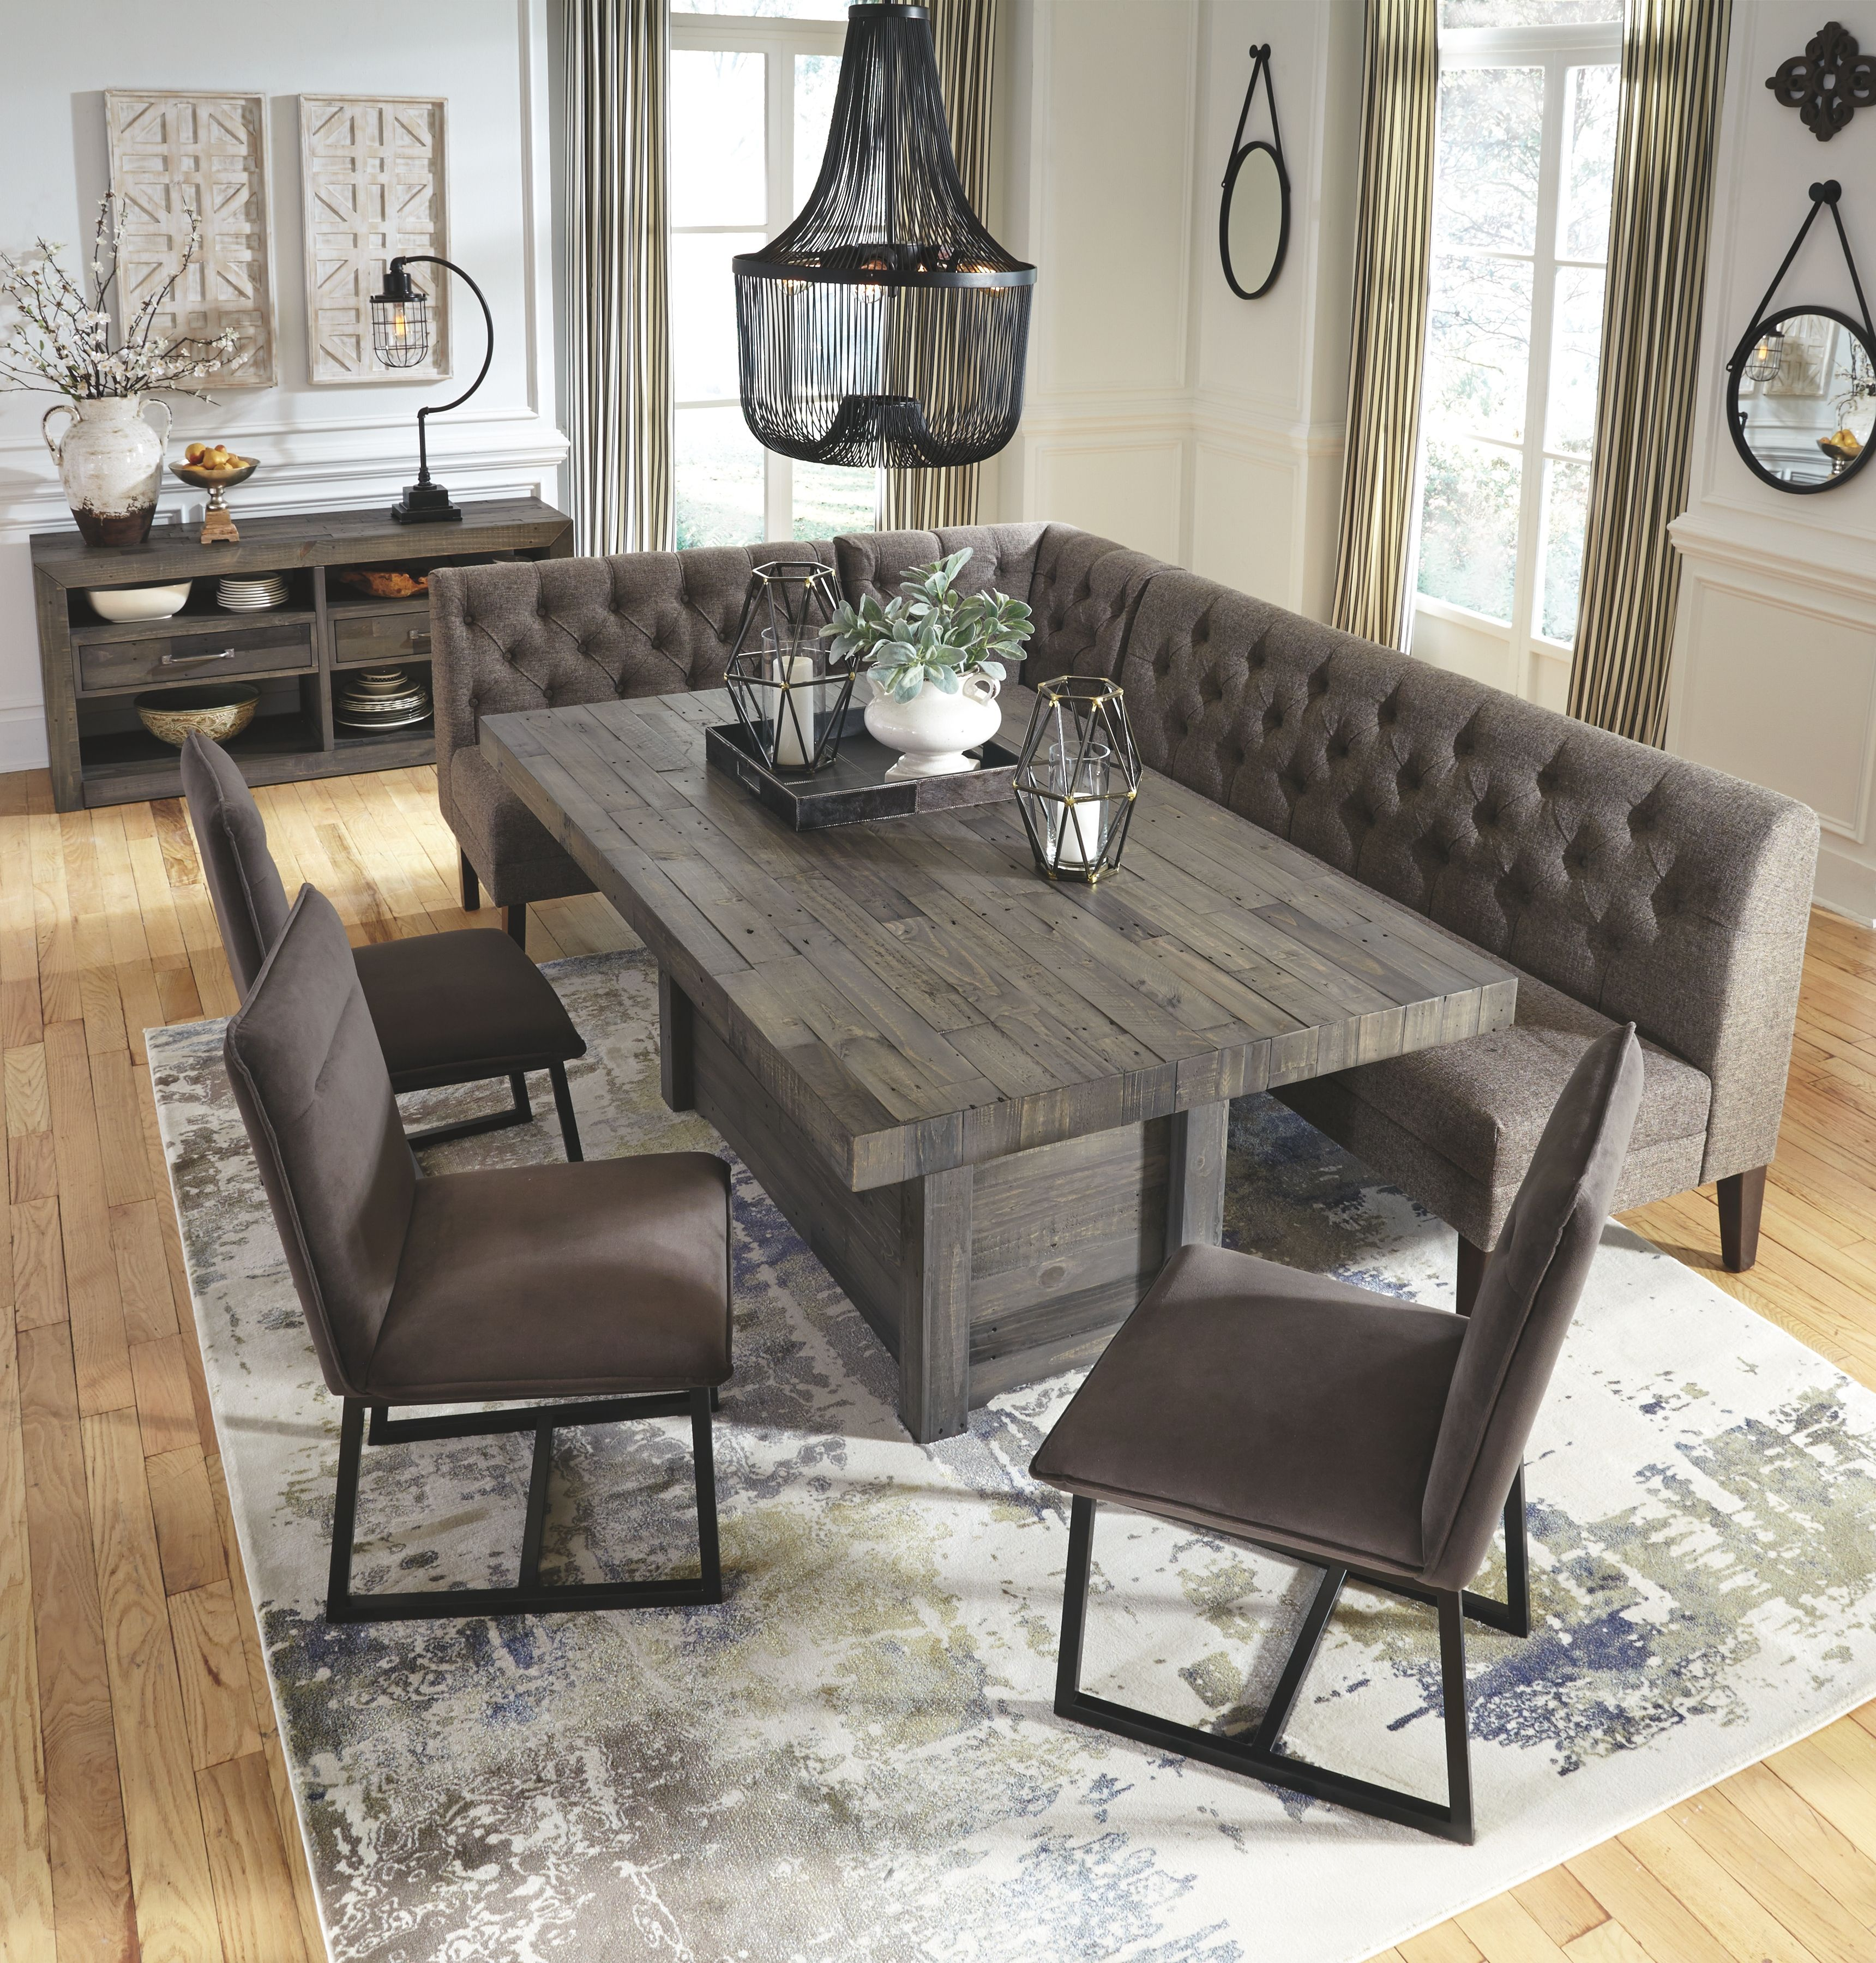 Mayflyn Dining Room Server, Charcoal in 2019 | Dining room ...